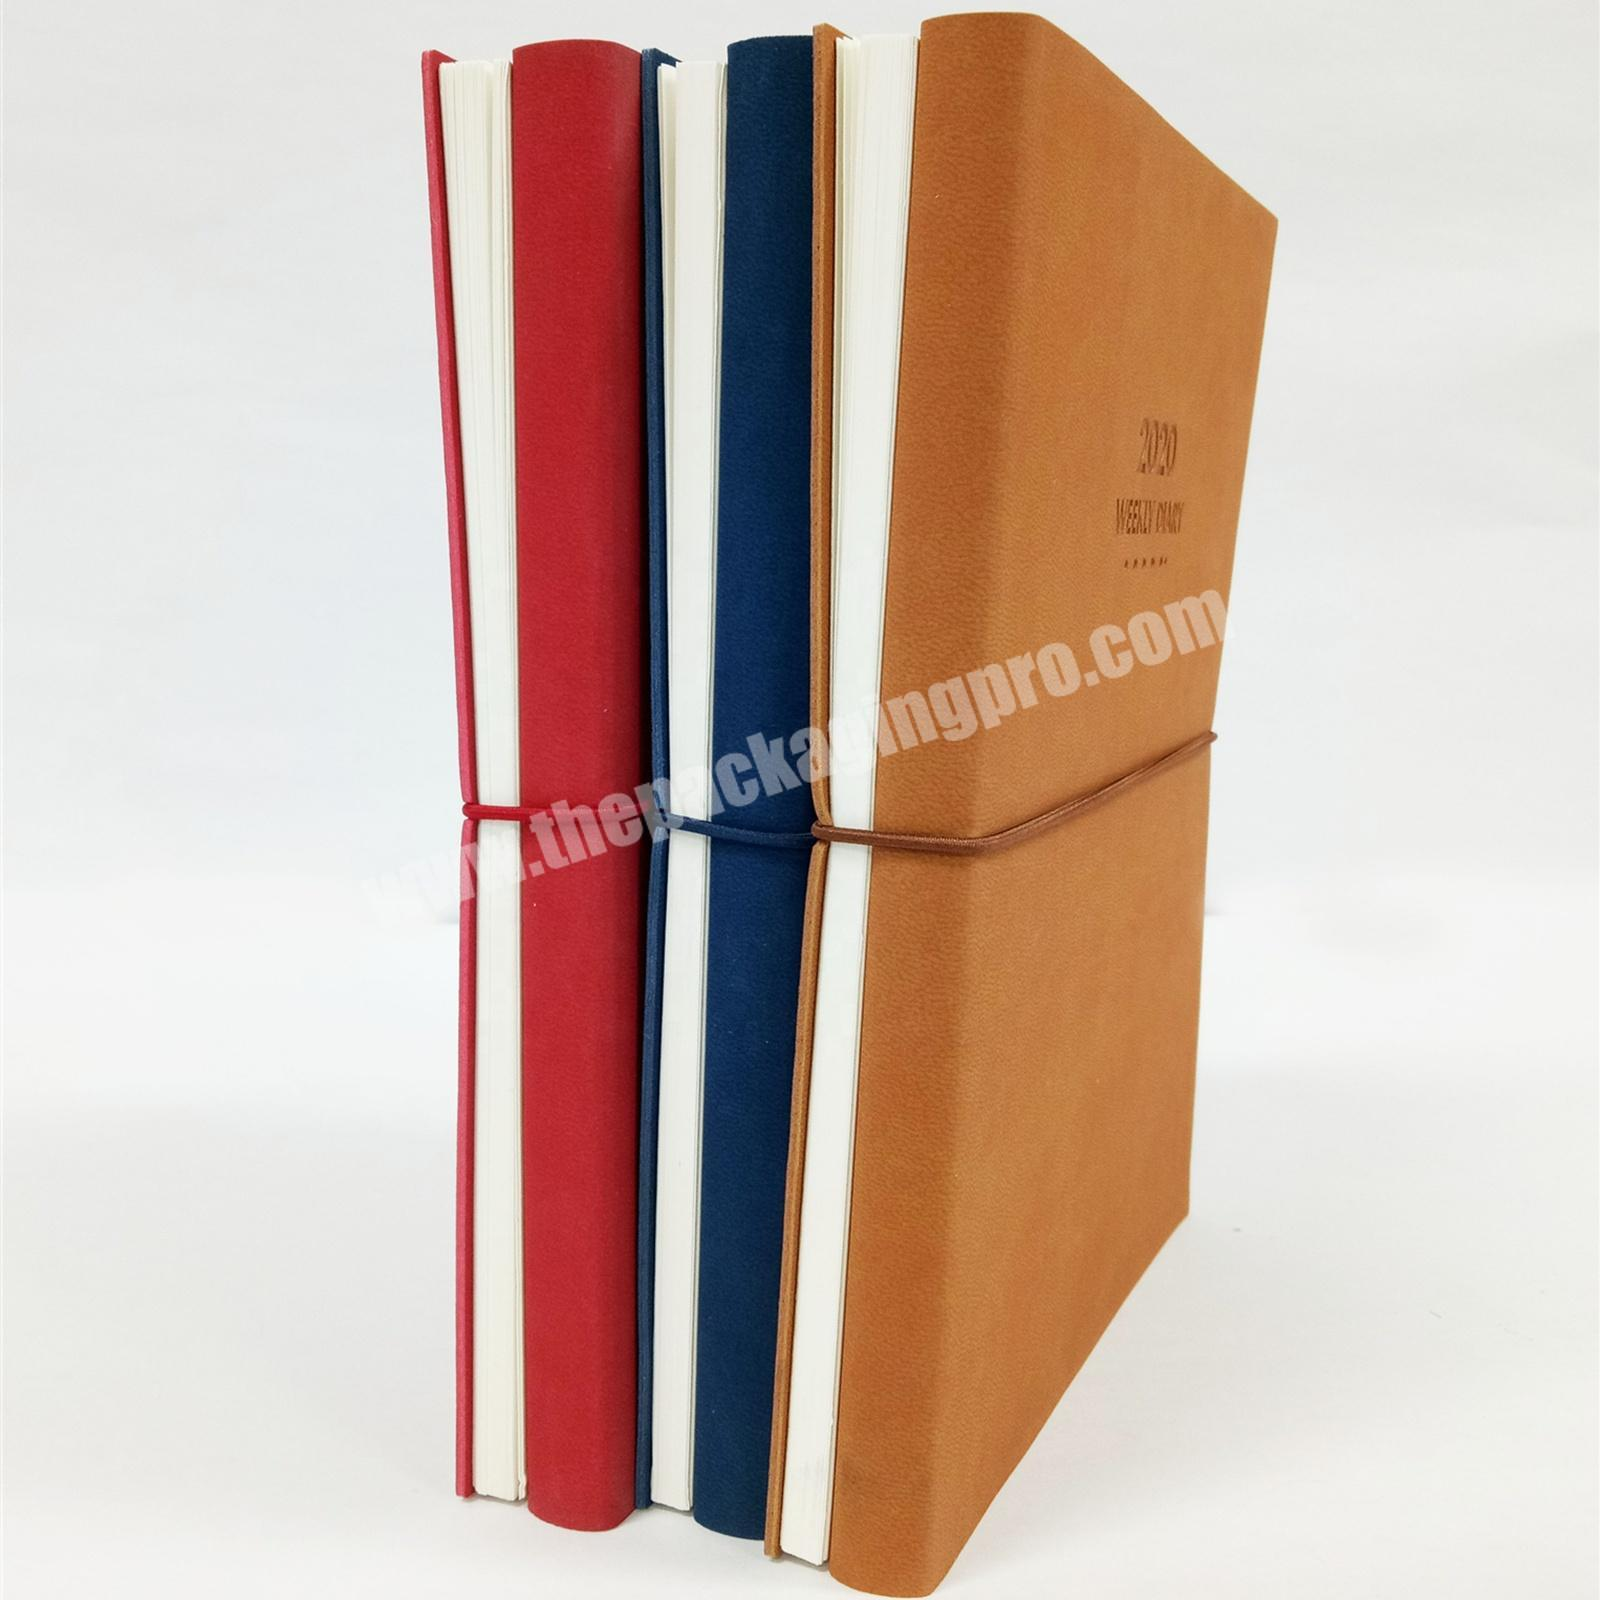 Vintage Style Double-sided Notebook  Weekly Diary Customized Lined Journal